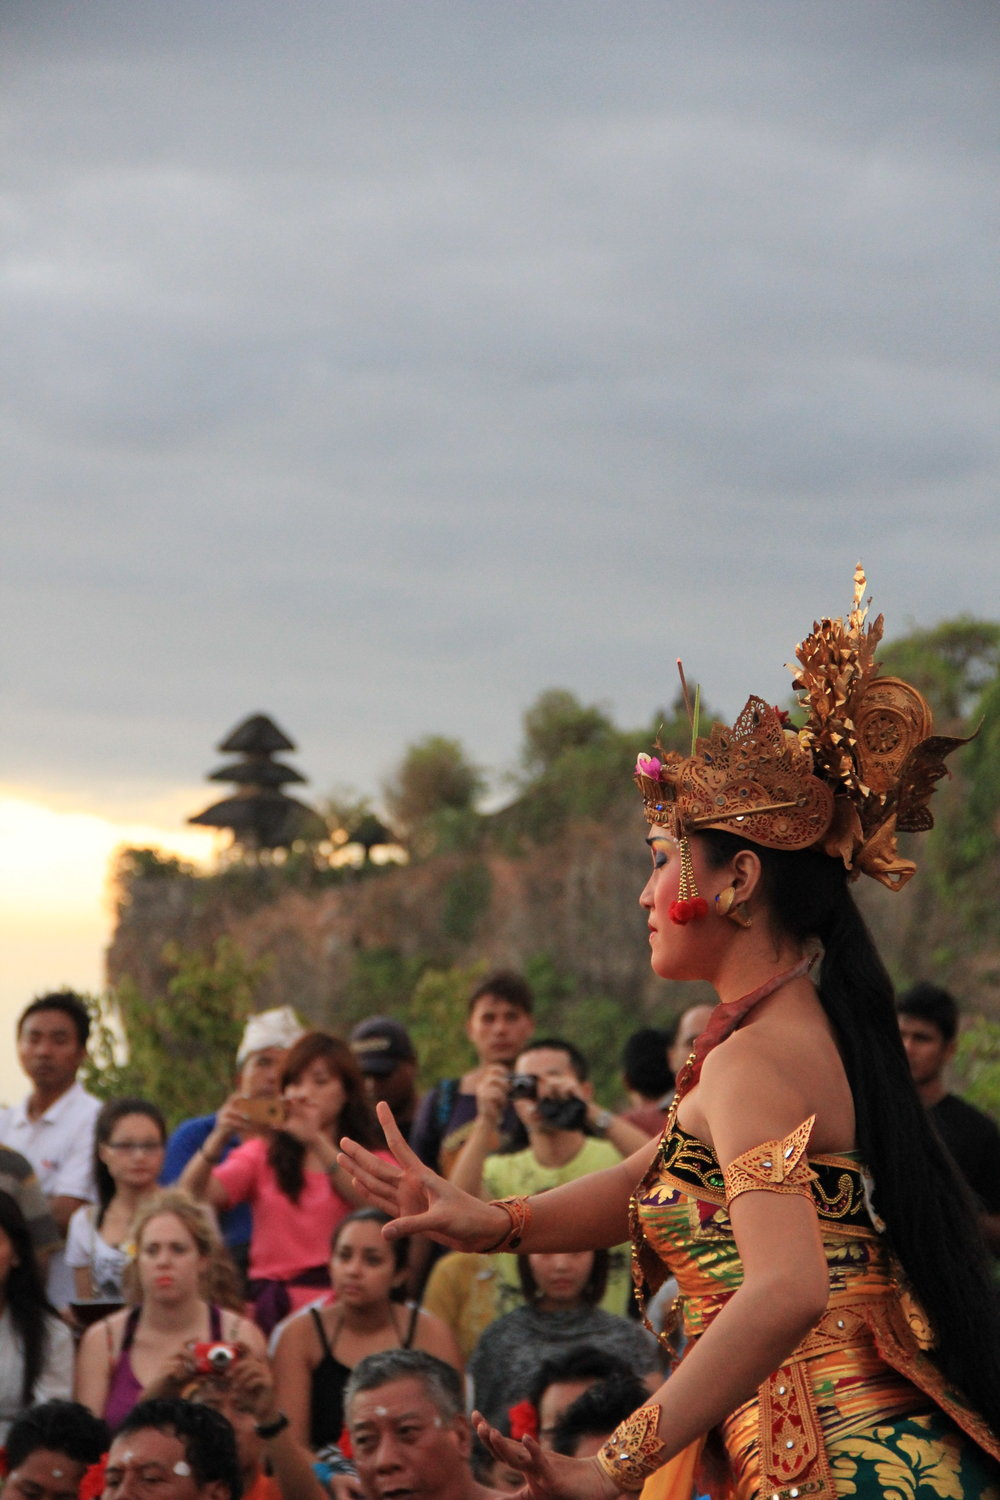 Their unique traditions and culture is what makes Bali such a special place 🙌🏽 Uluwatu temple is perched on top of a steep cliff 70 metres above sea level and it is where the Kecak Fire Dance takes place. This is one of the most iconic art performances of the island, so be sure to get there on time and enjoy it with an amazing sunset as a background 🌄